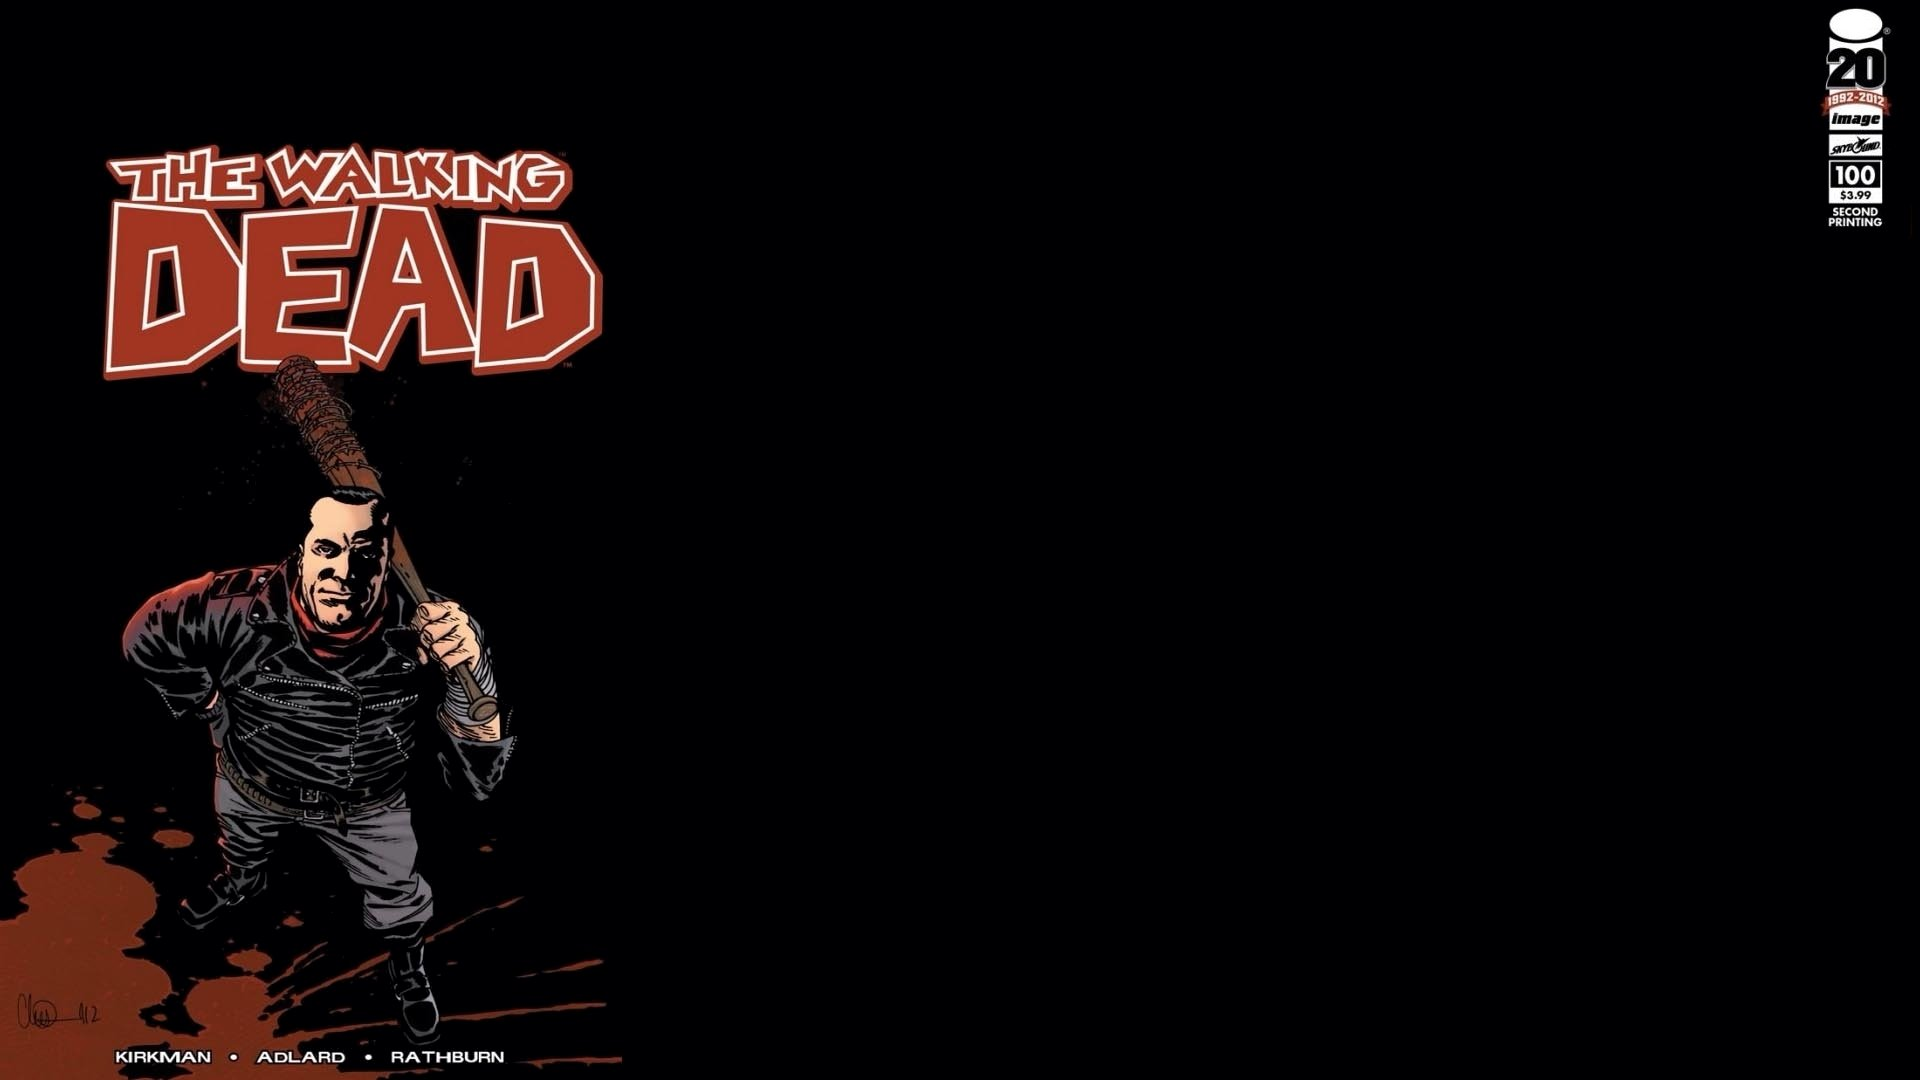 The Walking Dead Full HD Wallpaper and Background Image ...